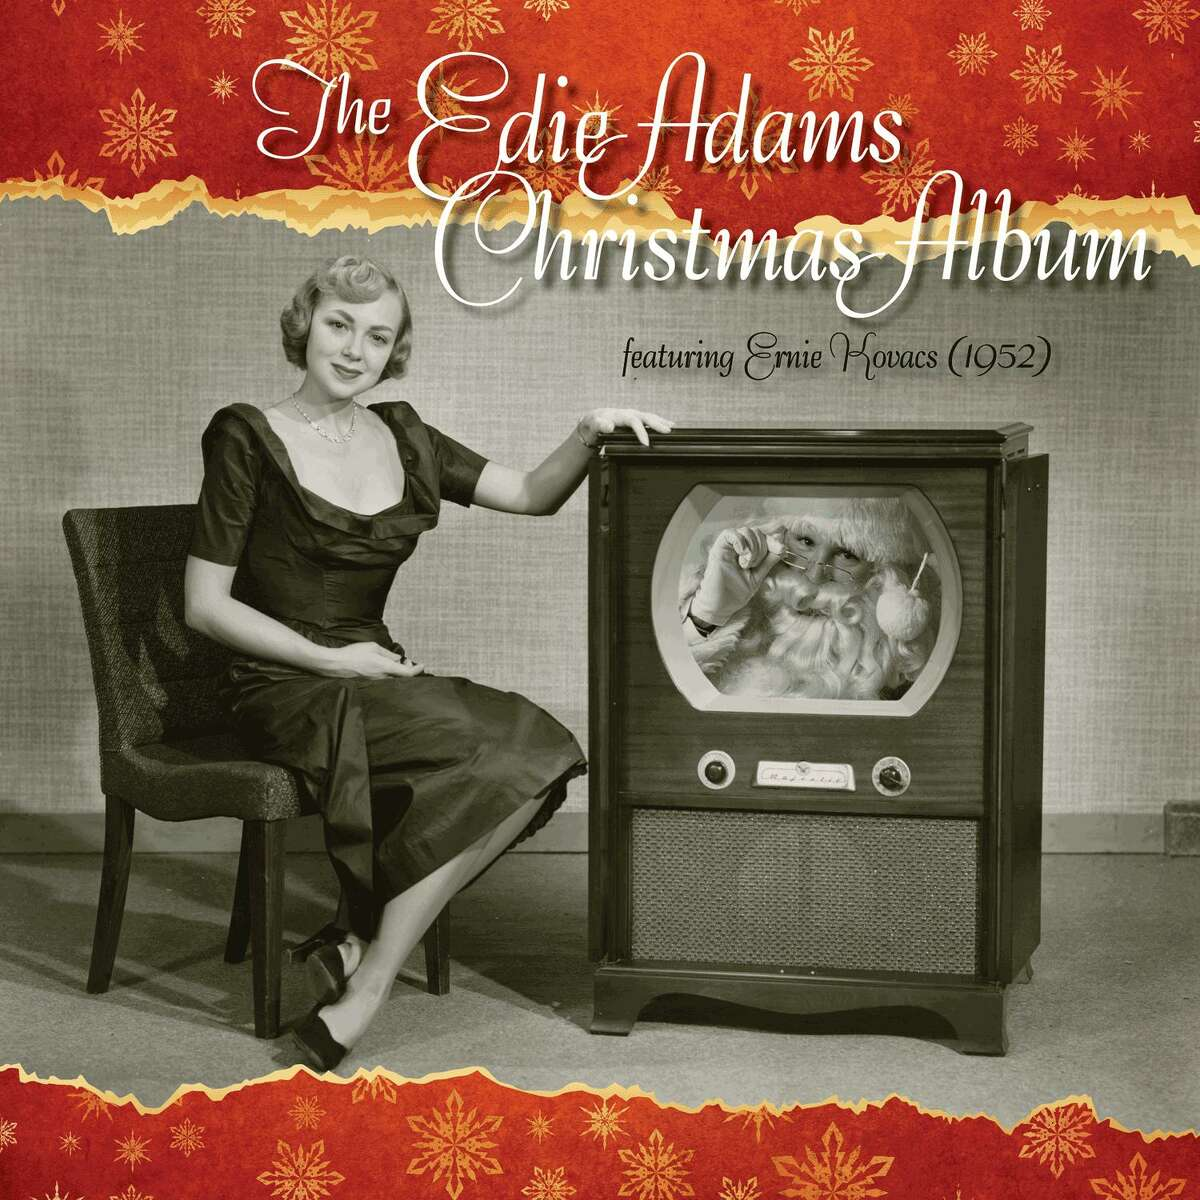 Music for the Edie Adams CD came from her collection.